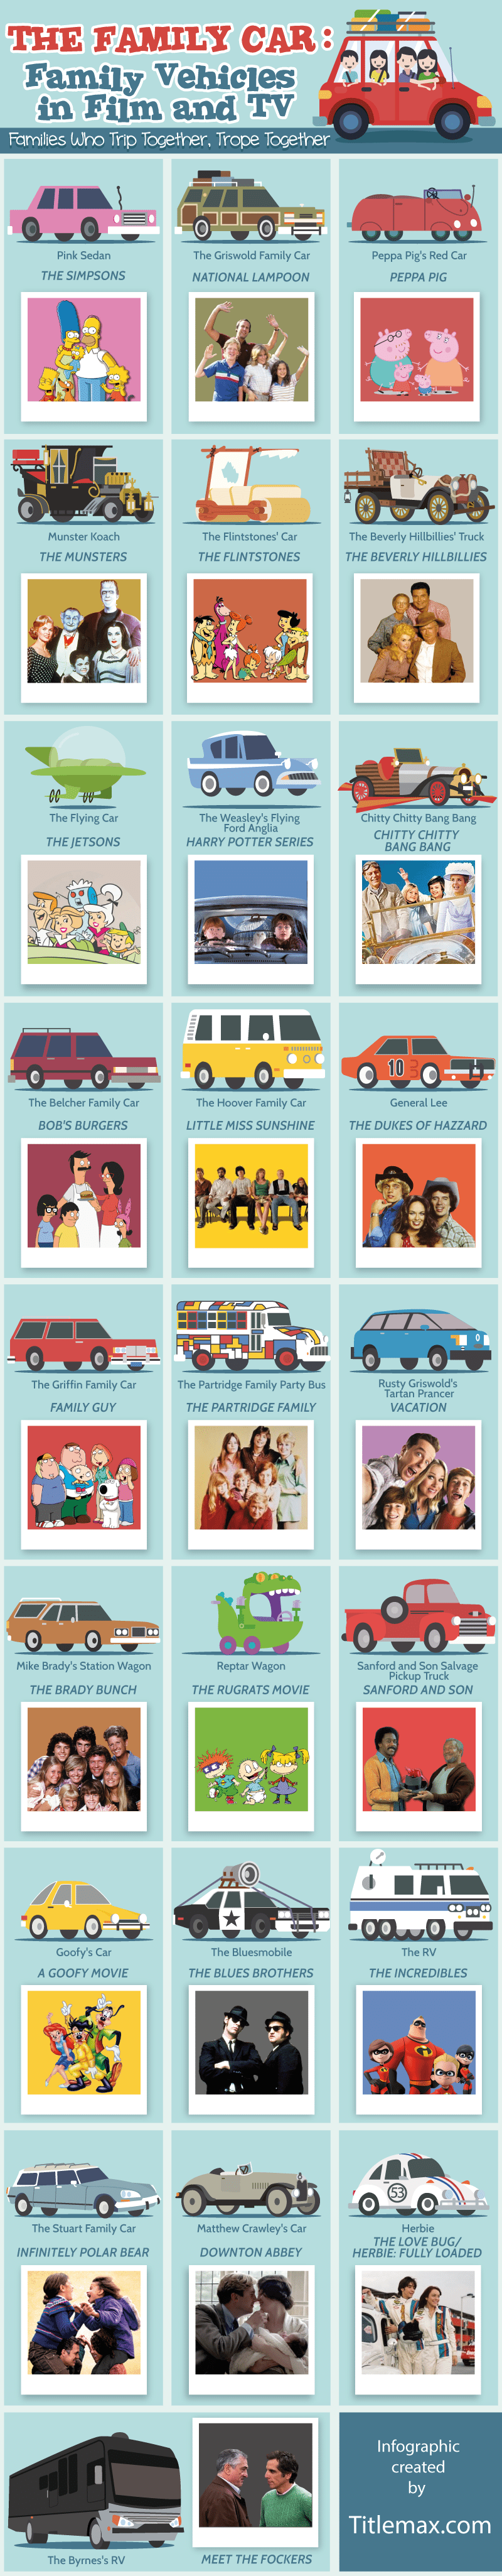 Famous Family Cars in Comedy TV and Film